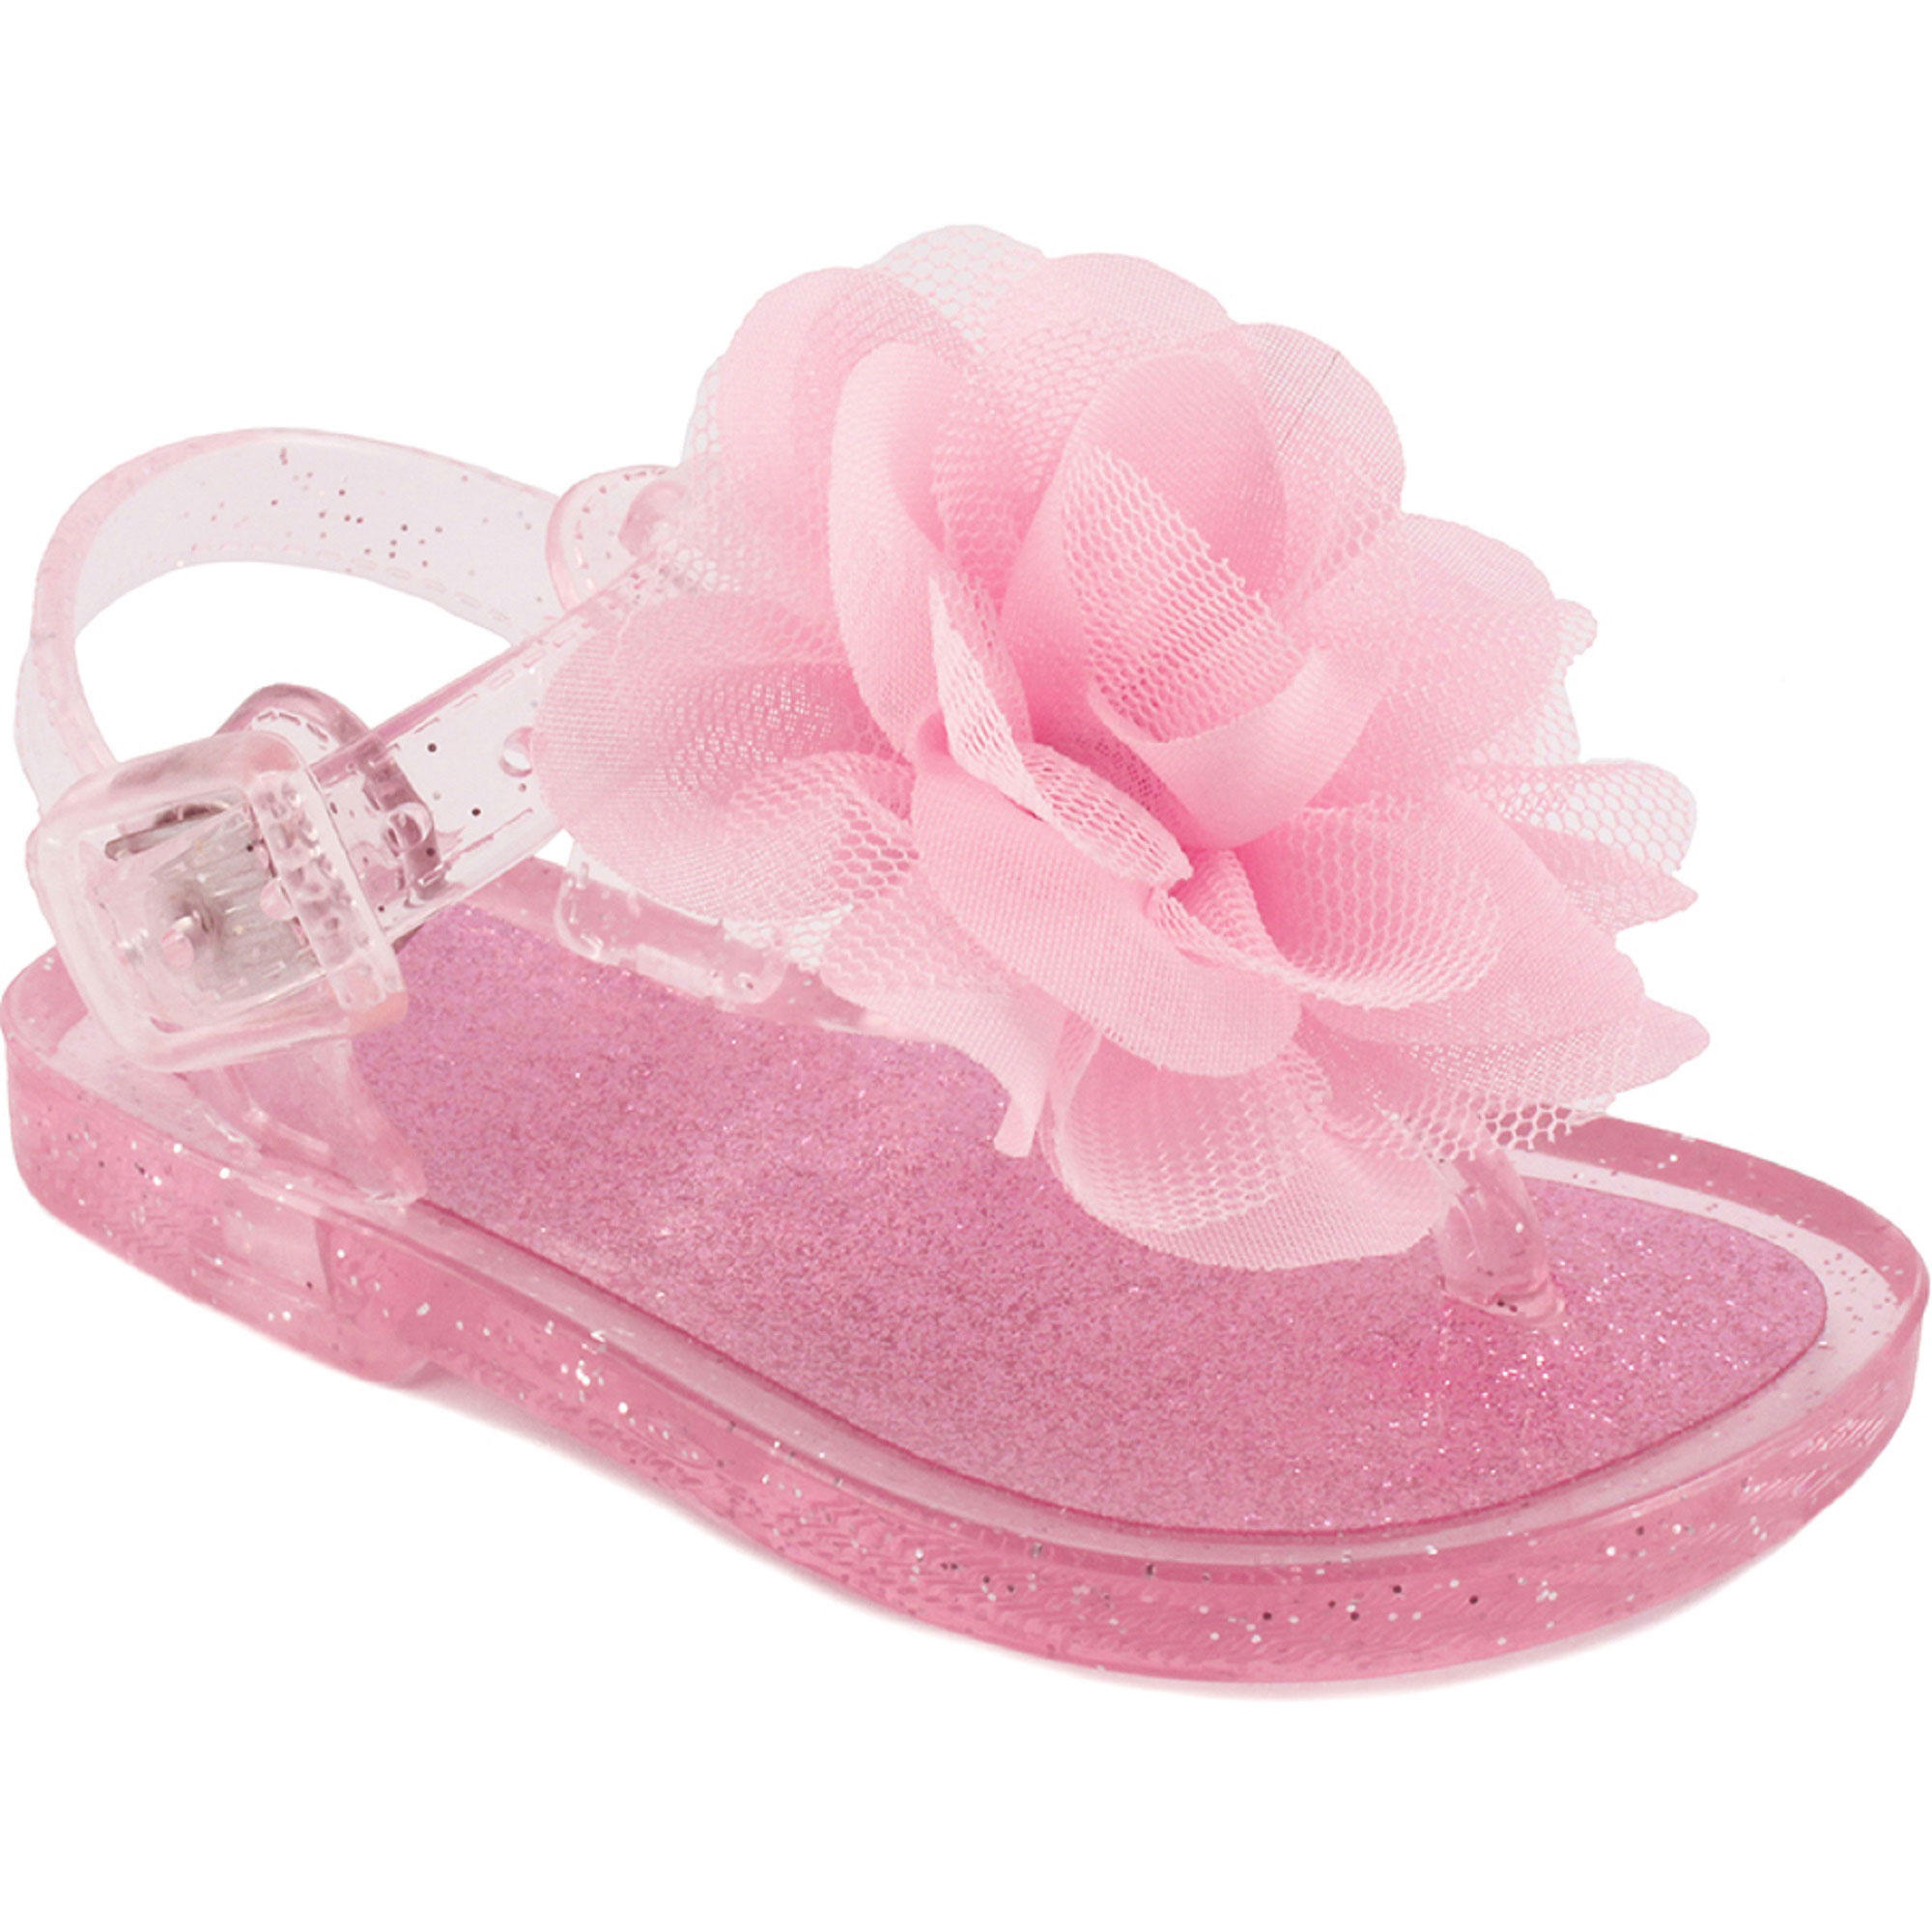 Wee Kids Baby-Girls Sandals Jelly Shoes